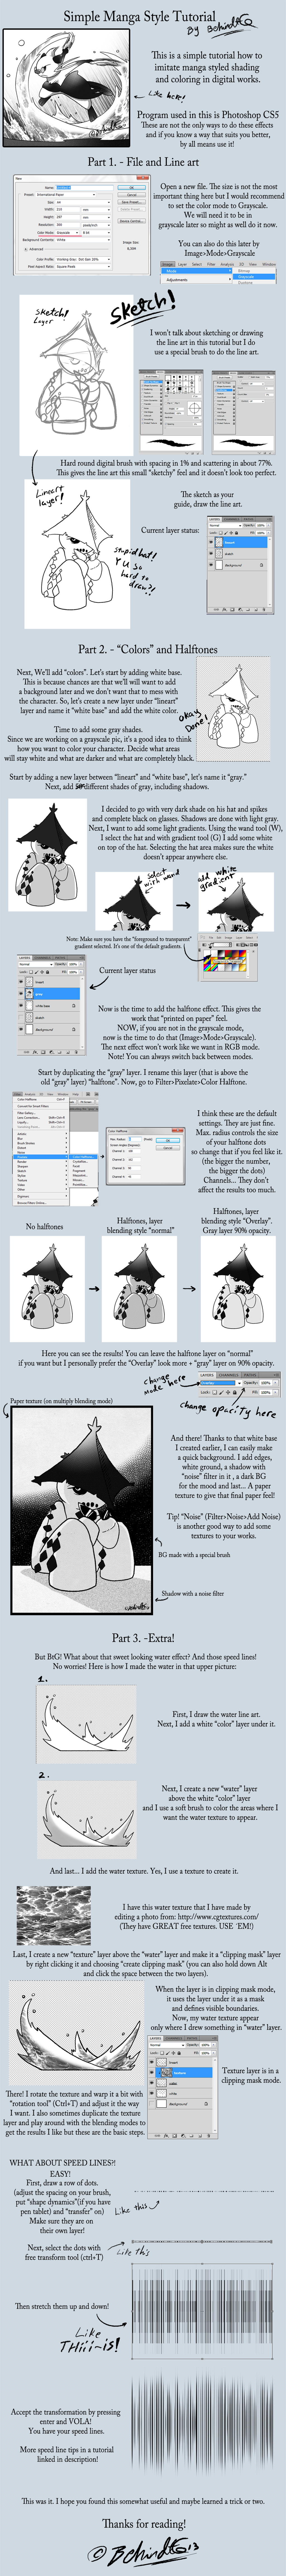 Simple Manga Style Tutorial by TamarinFrog